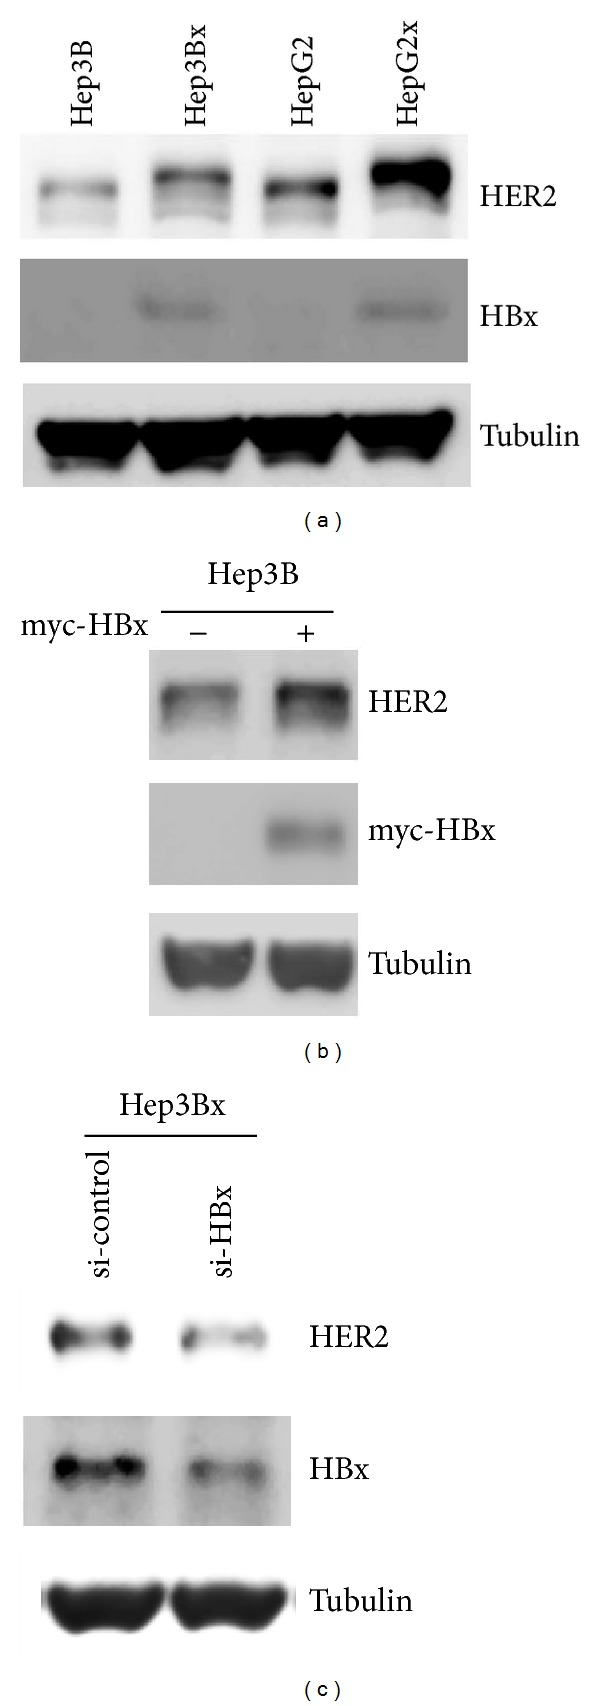 HBx induced HER2 protein expression in HCC cells. (a) The protein expressions of HER2, HBx, and Tubulin in two HBx-paired HCC cells were examined by Western blot ( N = 4). (b) Myc-HBx expression vector was transiently transfected into Hep3B HCC cells for 48 hrs. The HER2 and myc-HBx protein expressions were analyzed by Western blot ( N = 3). (c) Transient transfection of HBx siRNA was performed in Hep3Bx cells for 4 days. The HER2 protein expression and gene silencing of HBx protein expression were examined by Western blot ( N = 3).